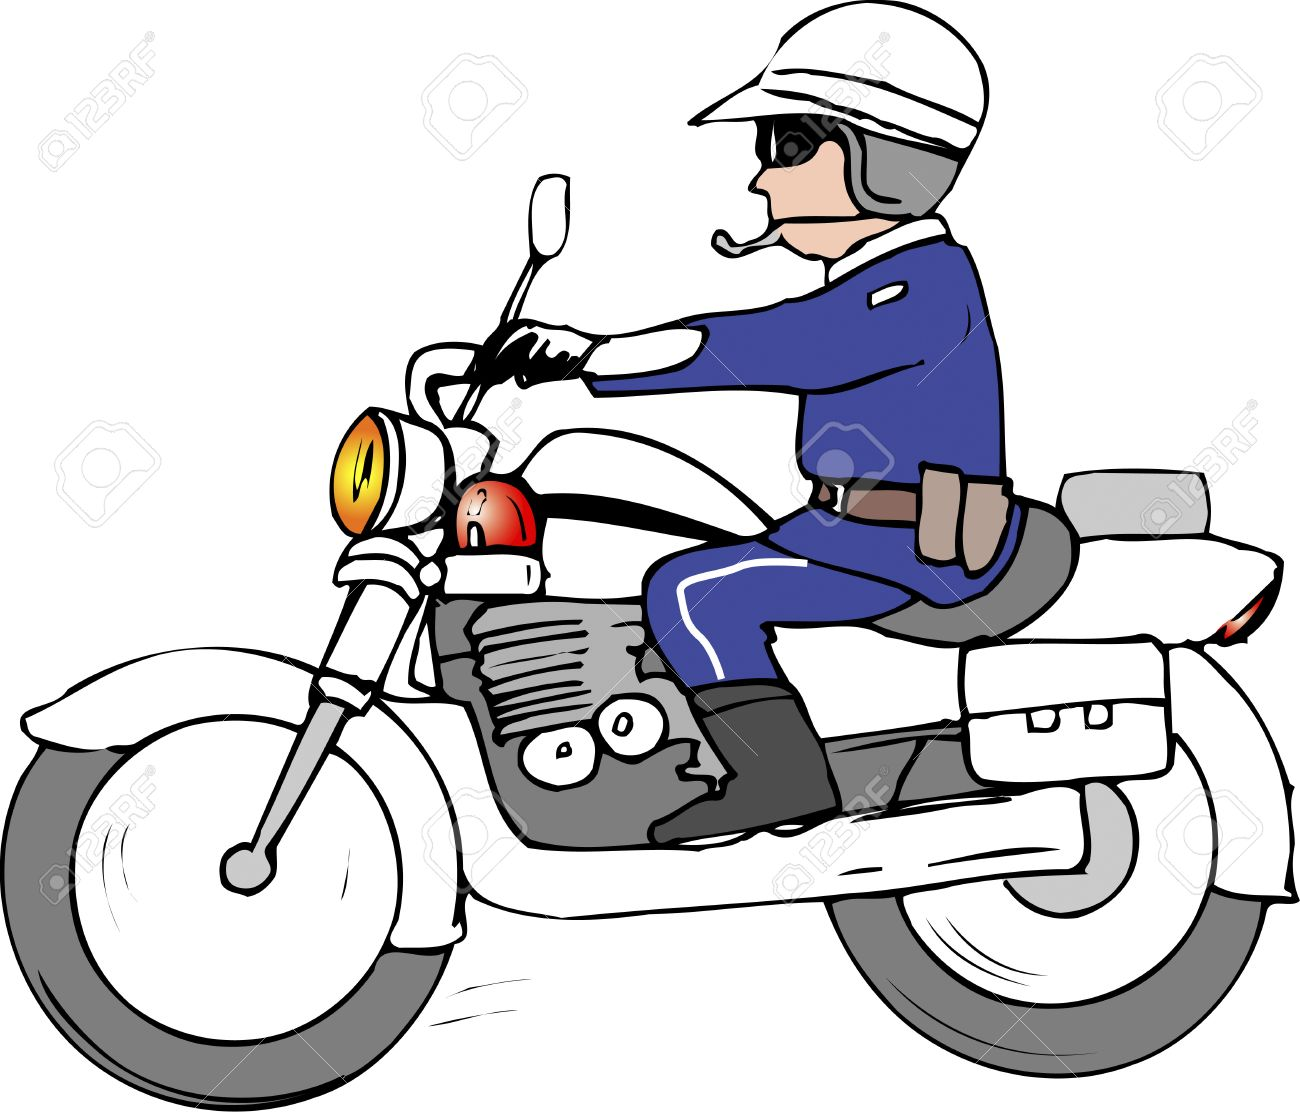 Police Motorcycle Team Stock Photo, Picture And Royalty Free Image.